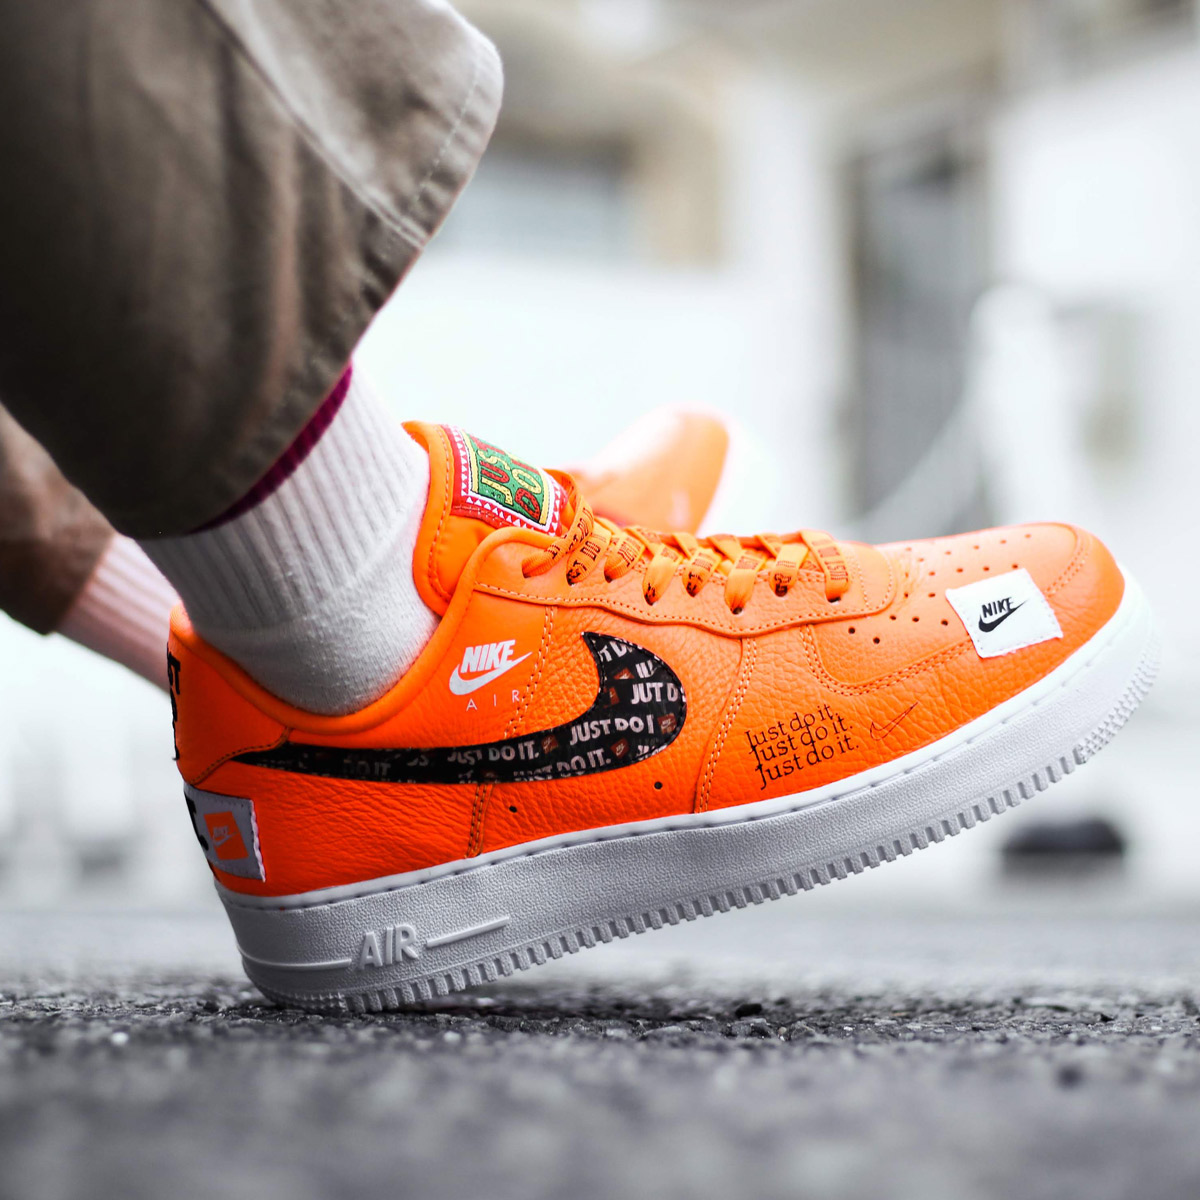 NIKE AIR FORCE 1  07 PRM JDI (Nike air force 1 07 premium JDI) TOTAL ORANGE TOTAL  ORANGE-BLACK-WHITE 18FA-S 75534513e